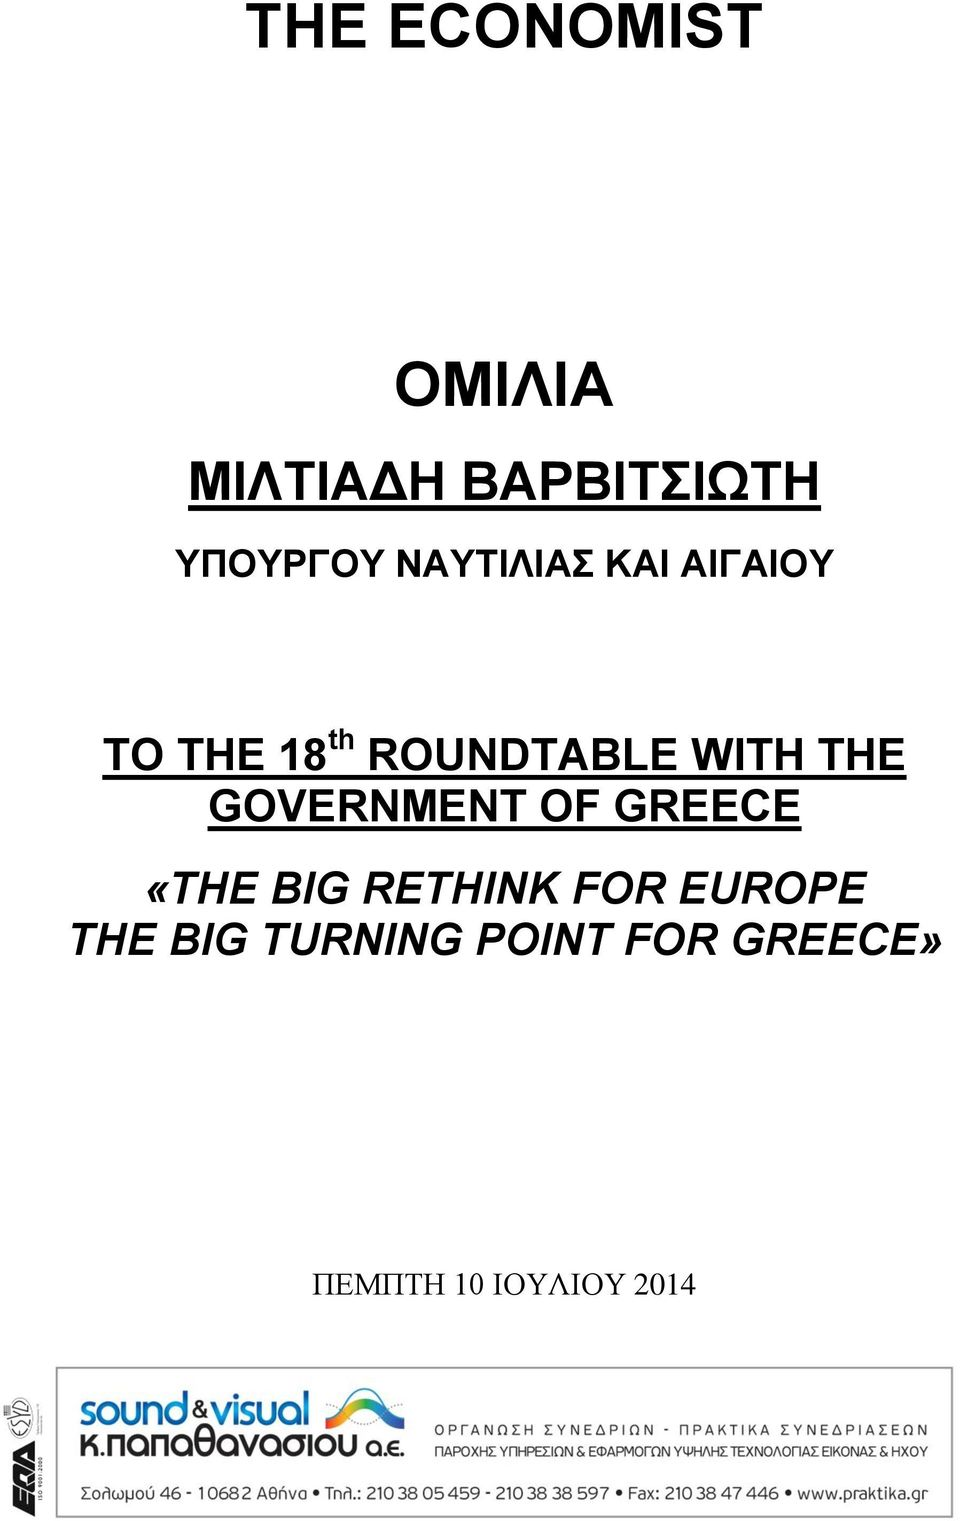 THE GOVERNMENT OF GREECE «THE BIG RETHINK FOR EUROPE